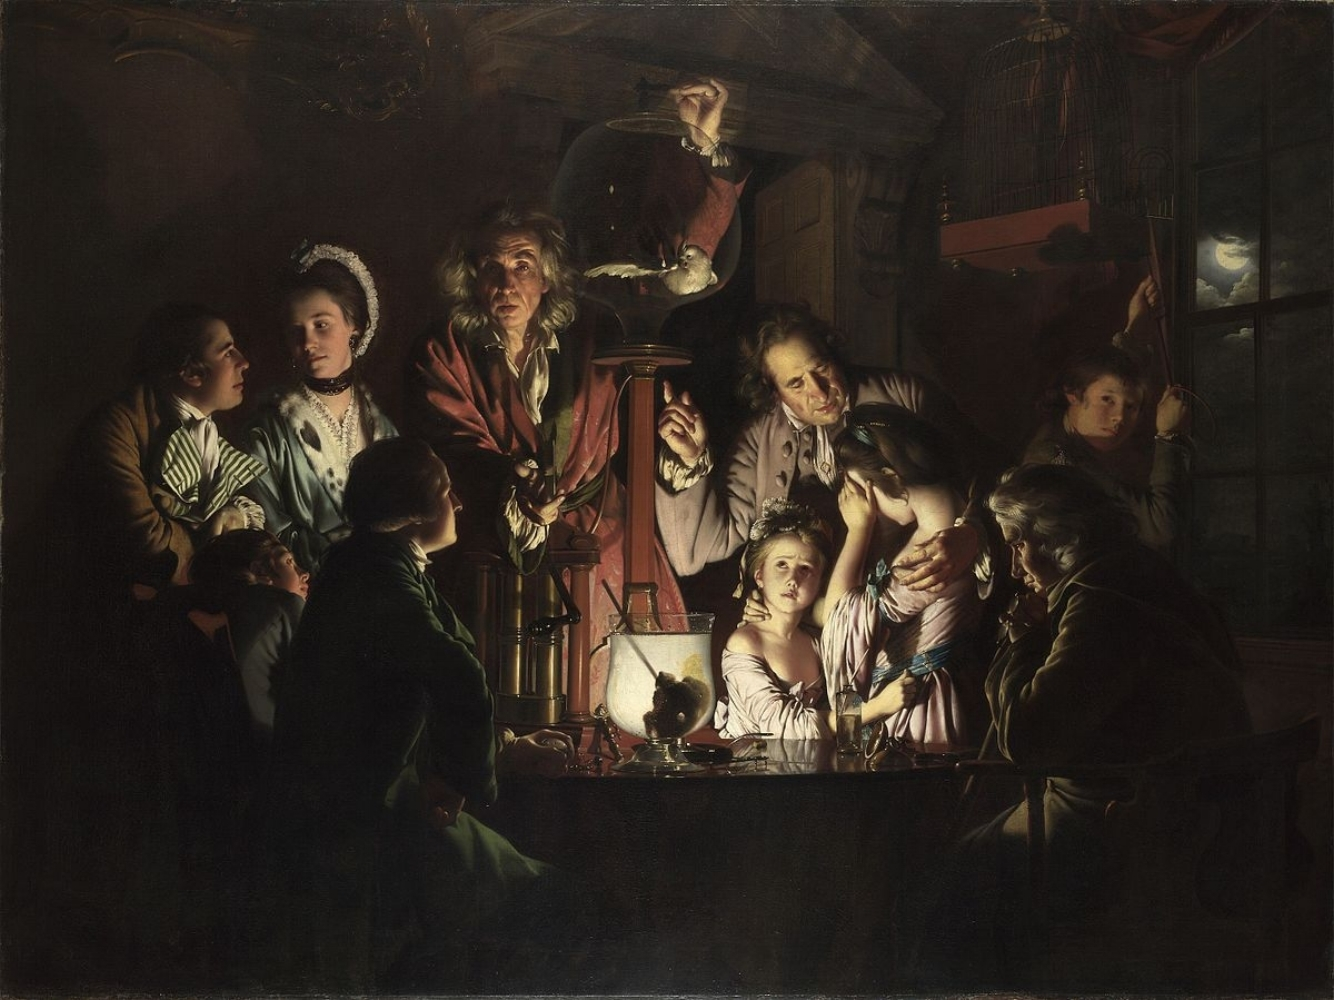 Joseph Wright of Derby: An Experiment with A Bird in the Air Pump 1768 (c) Tate Gallery London